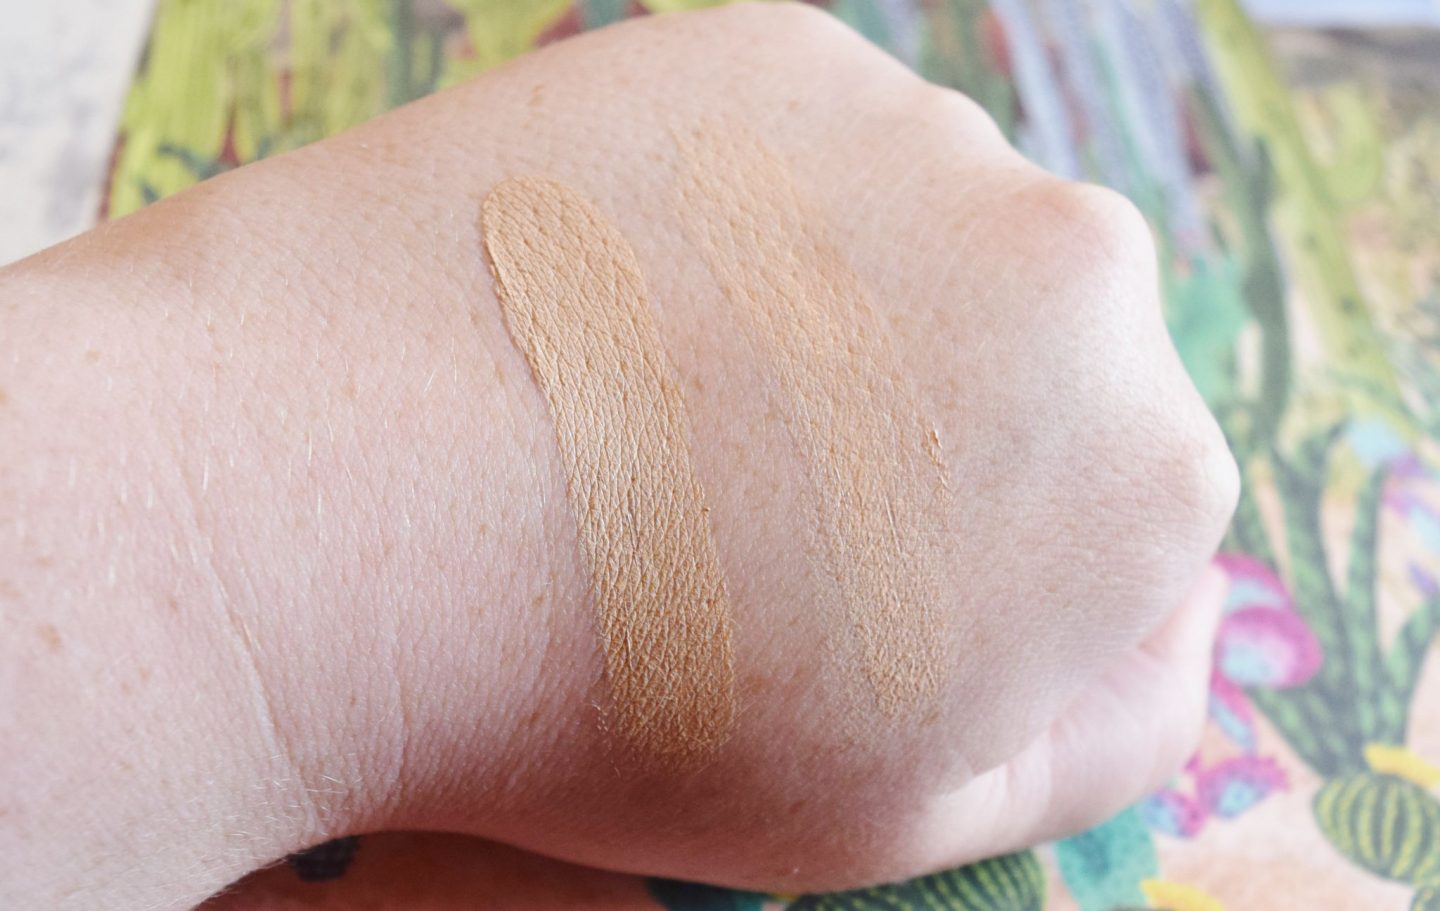 BENEFIT COSMETICS' NEW BOI-ING CONCEALER LINE-UP - A Life With Frills